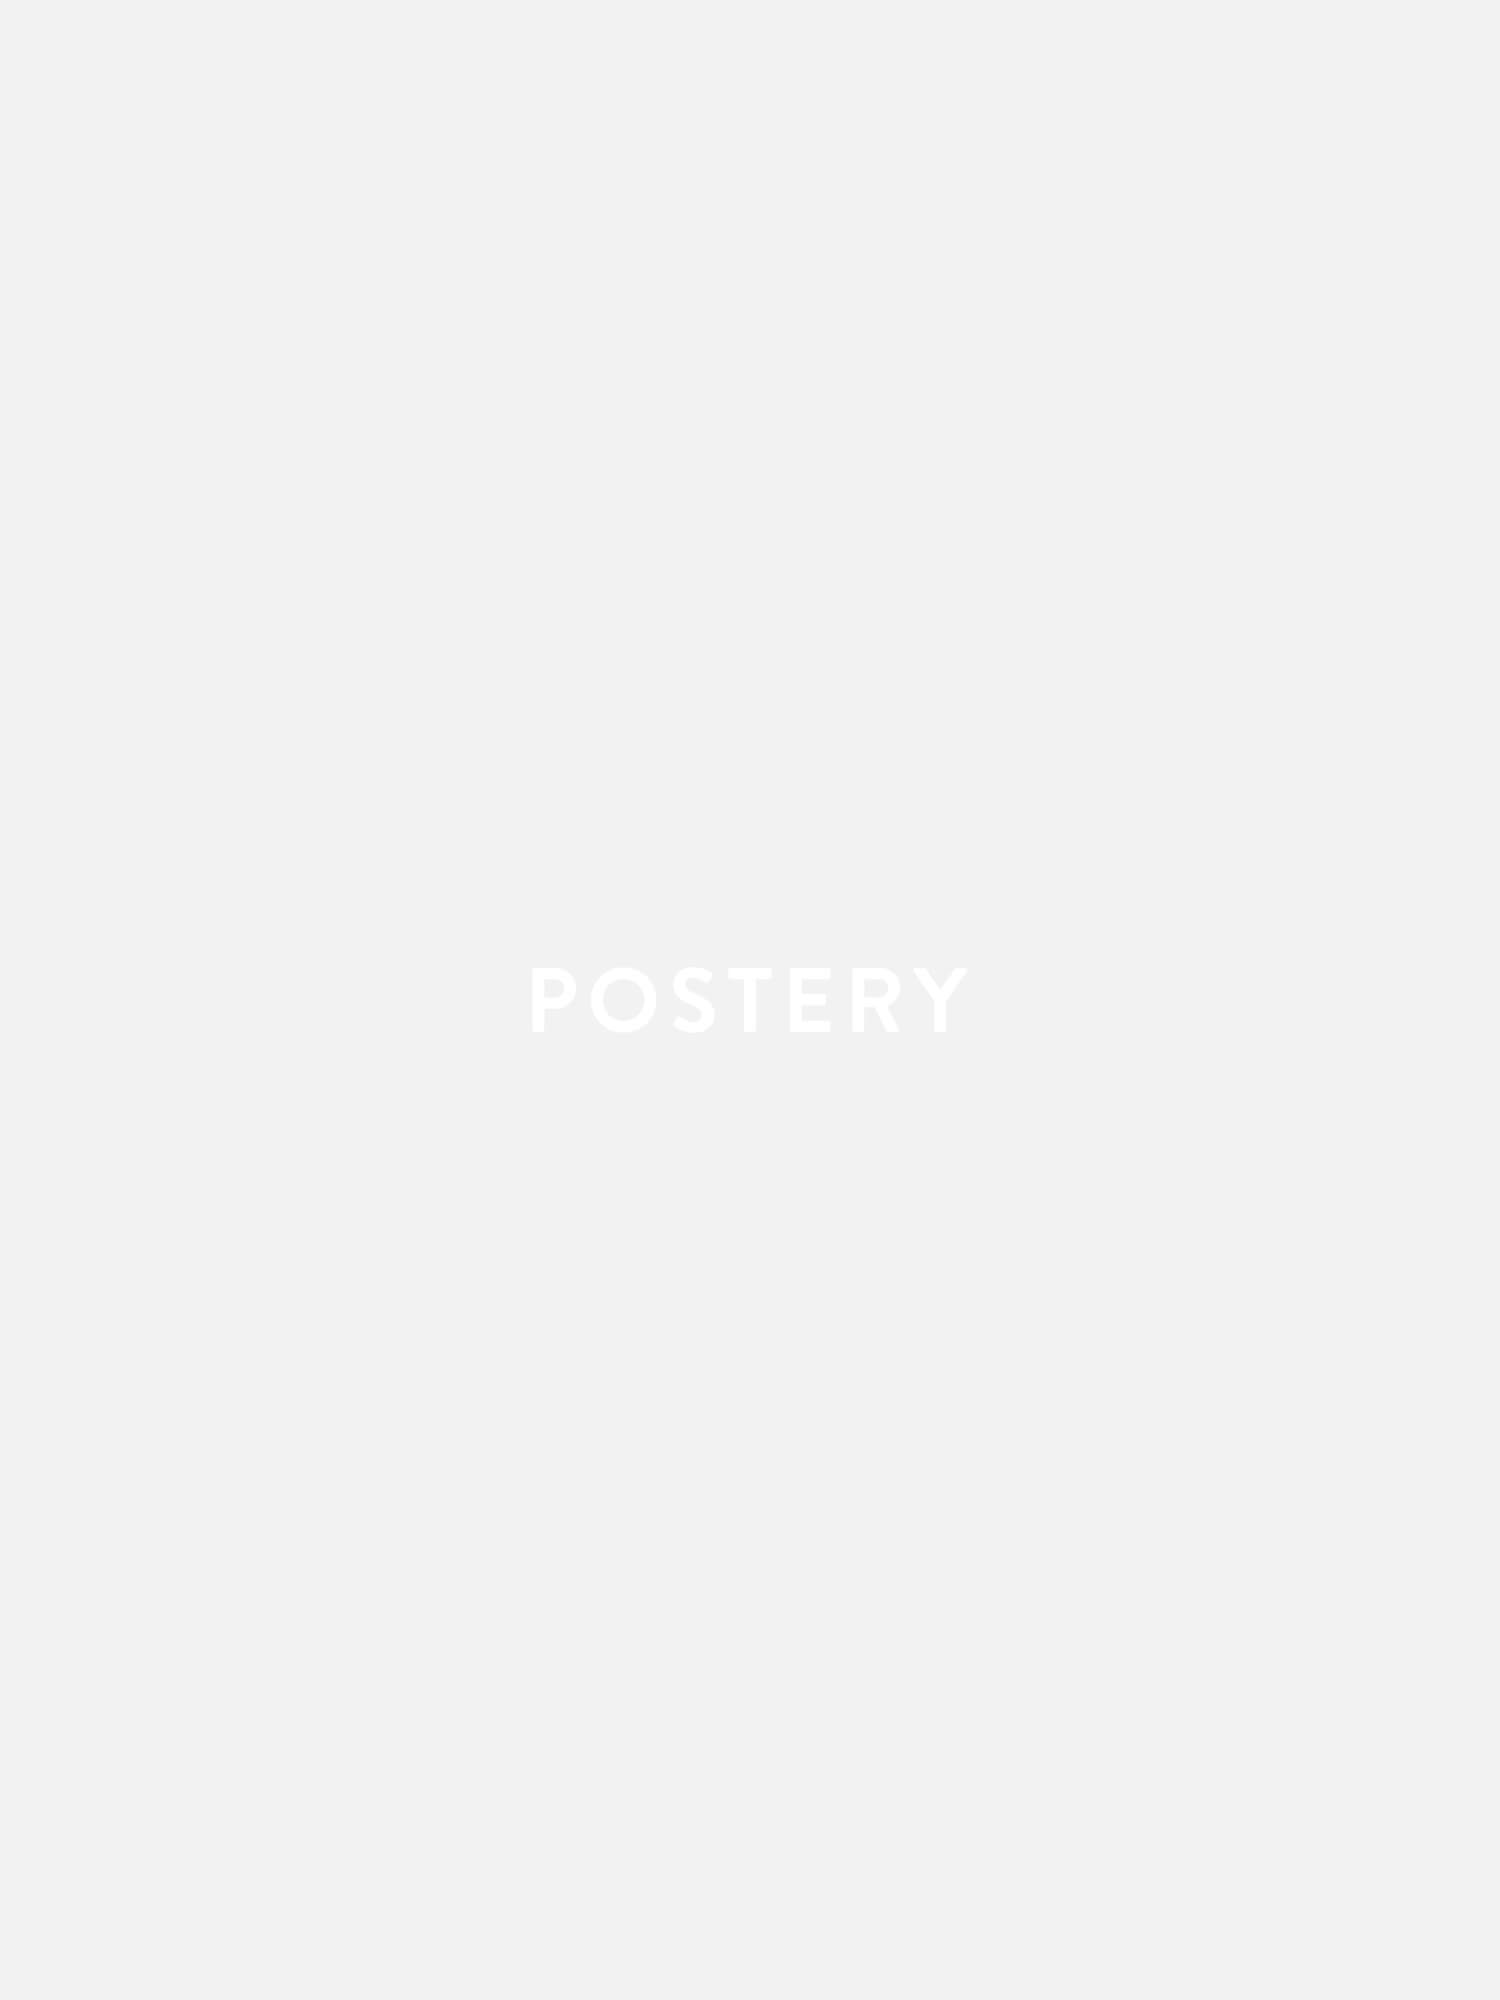 Balloons Sky Poster